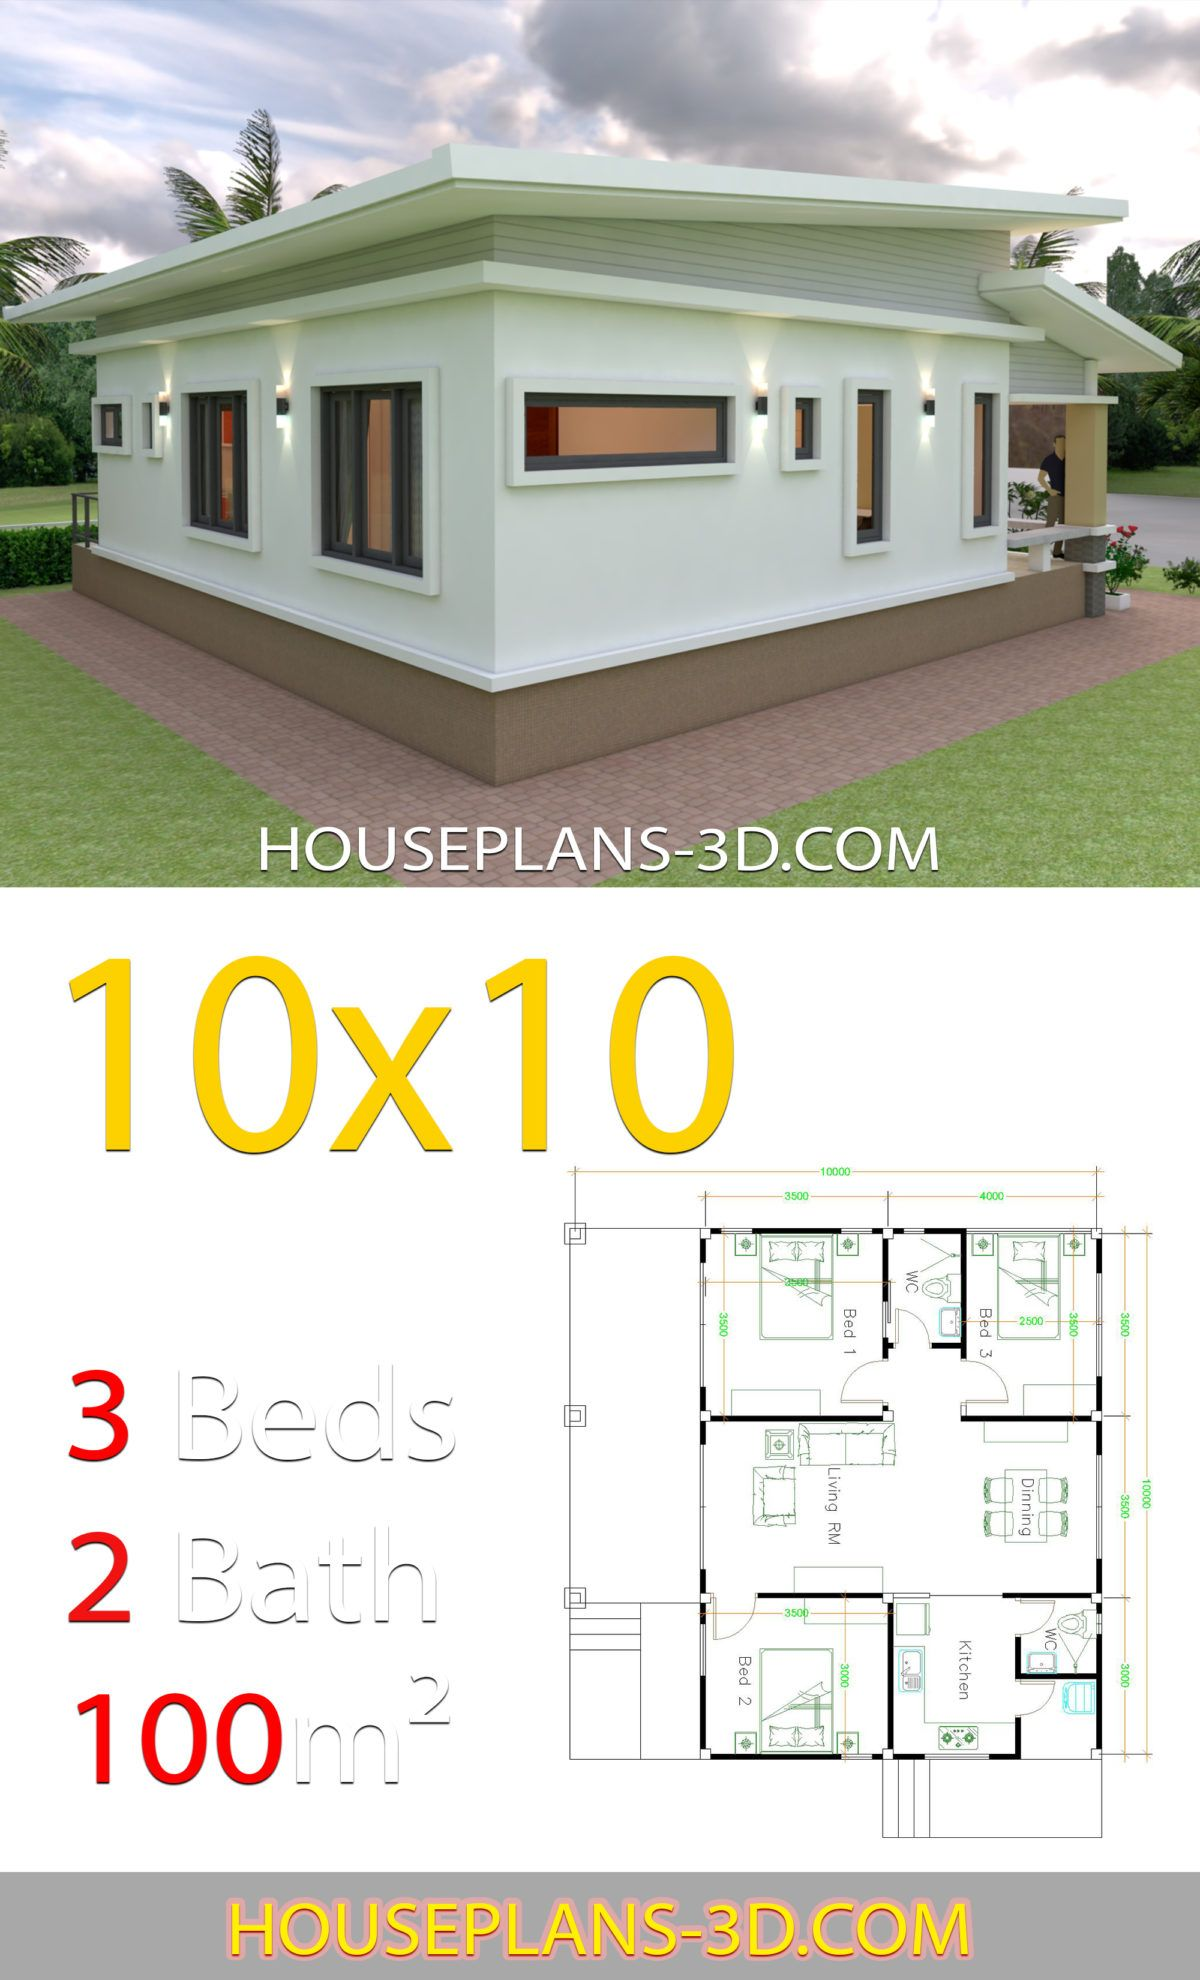 House Design Bedrooms Full Interior Plans Layout